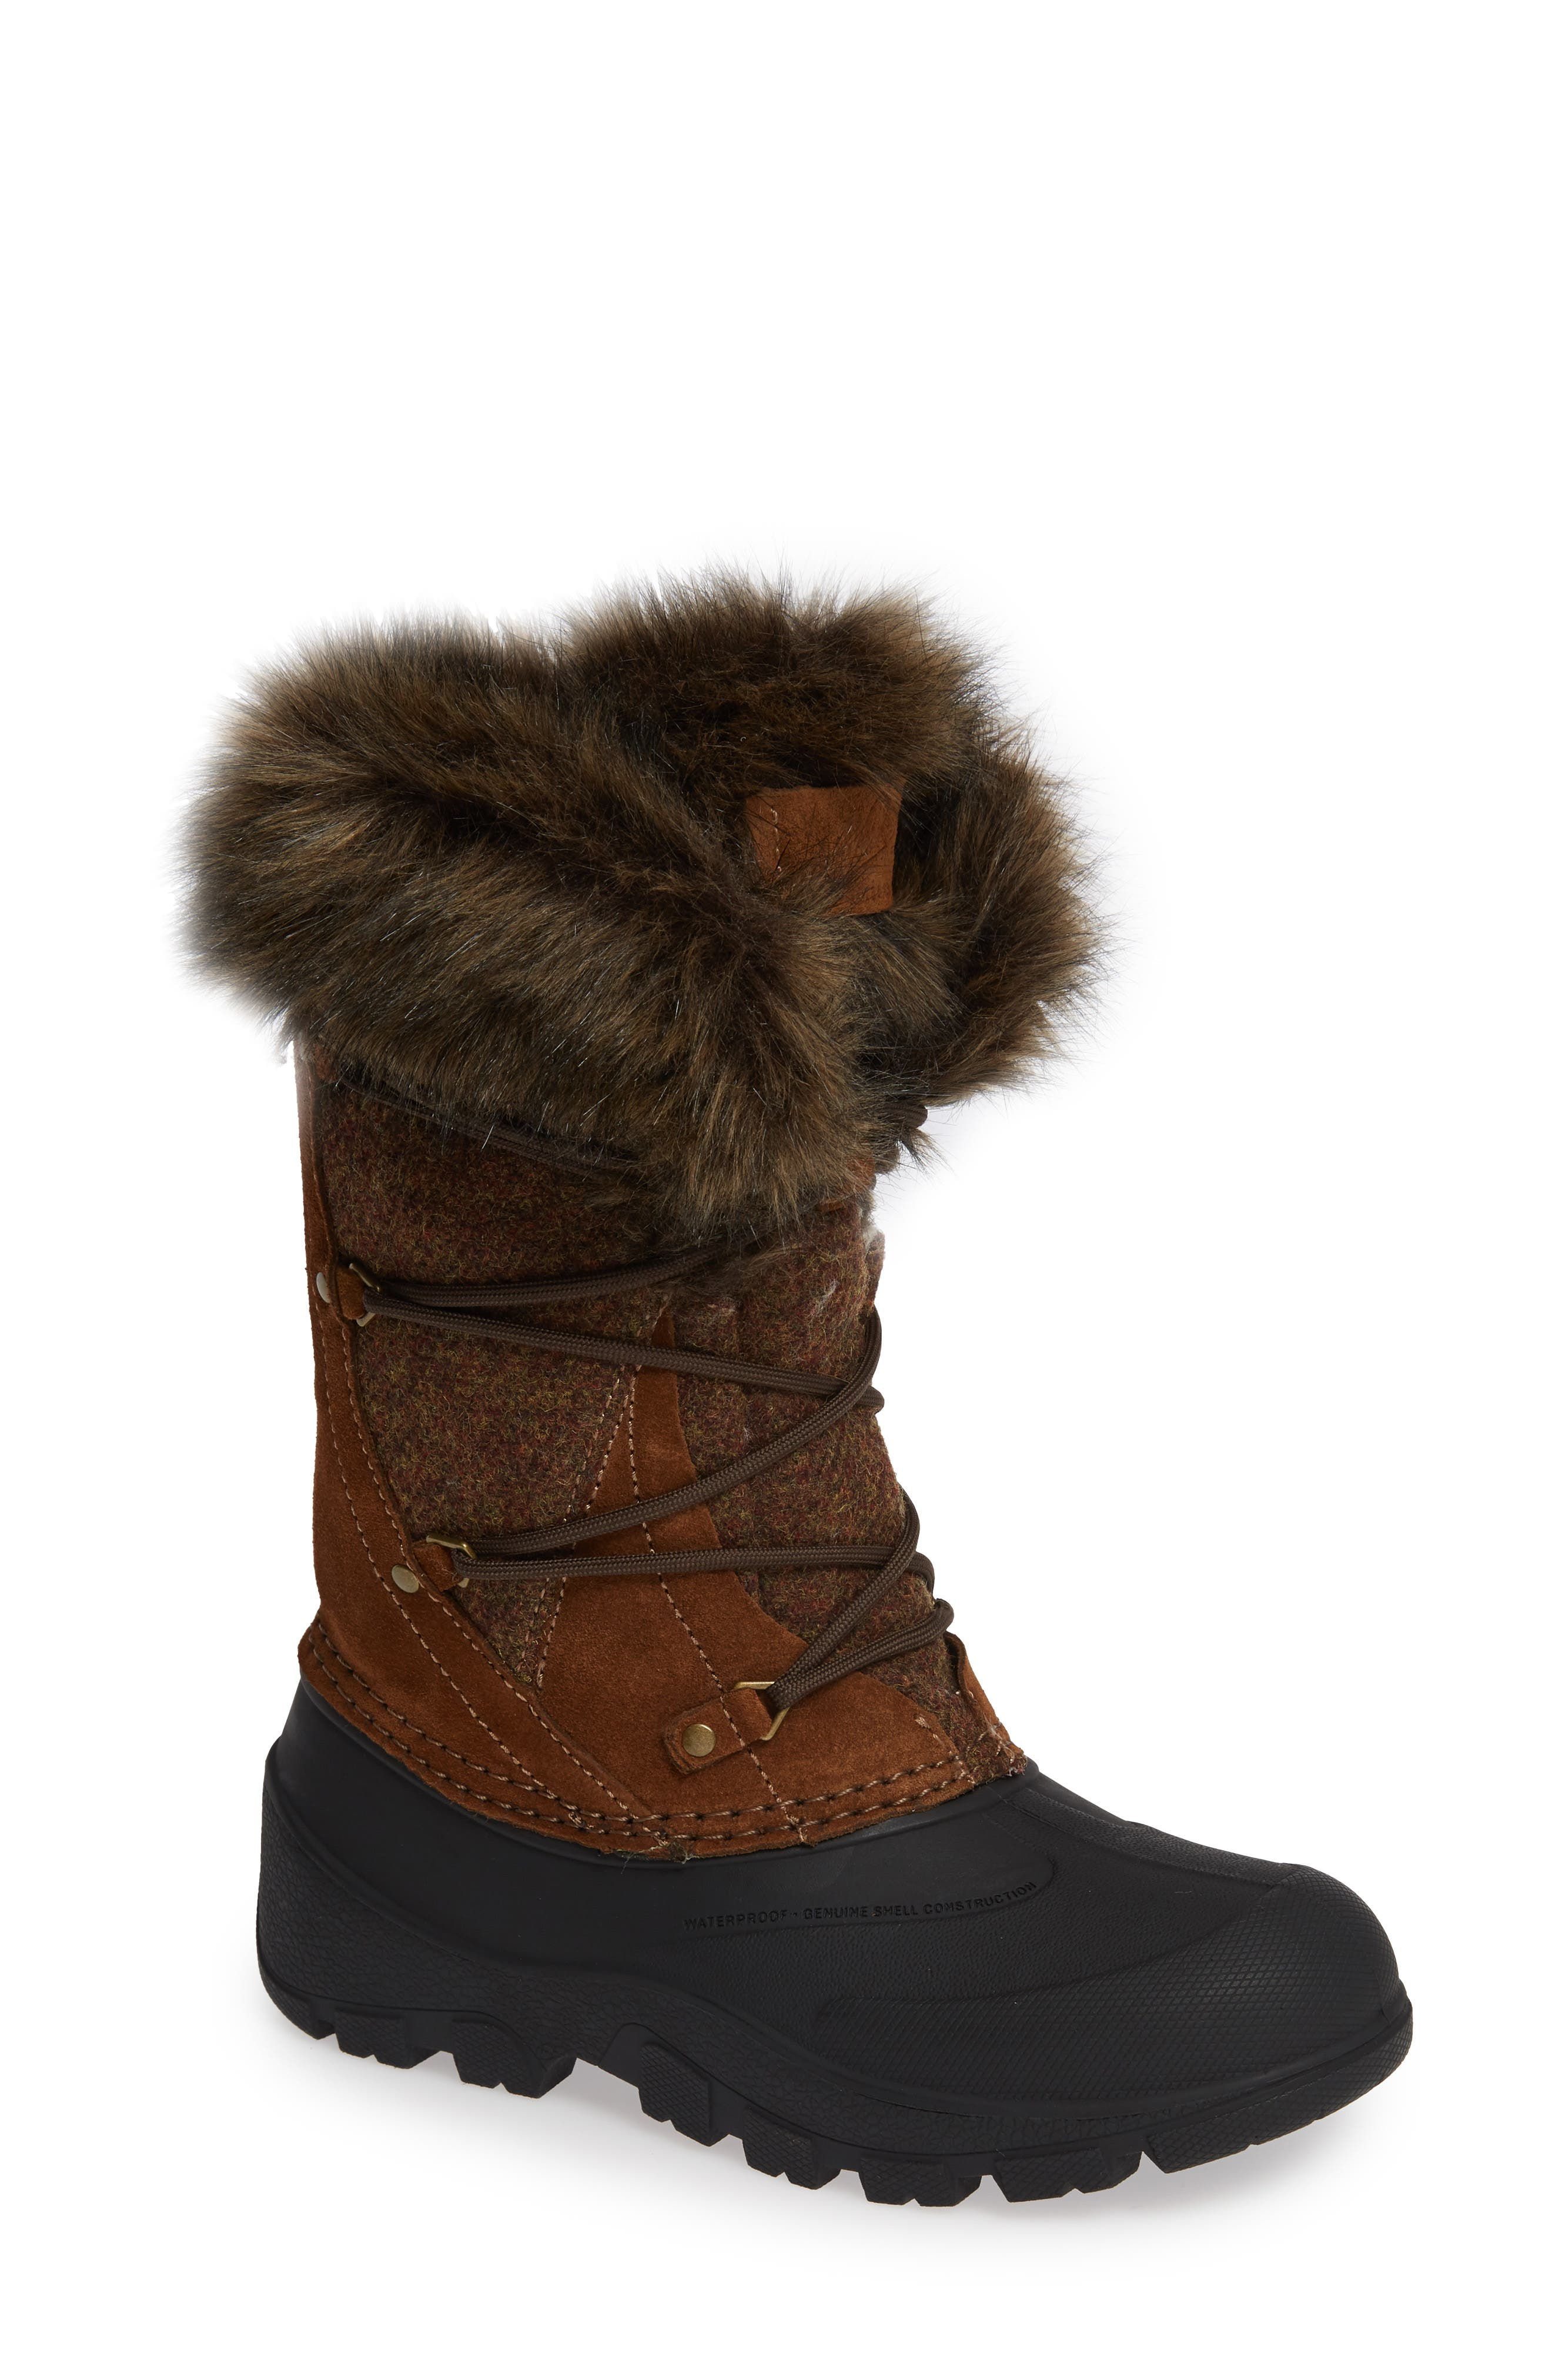 Ice Cougar Waterproof Knee High Winter Boot with Faux Fur Trim,                         Main,                         color, DACHSHUND WOOL